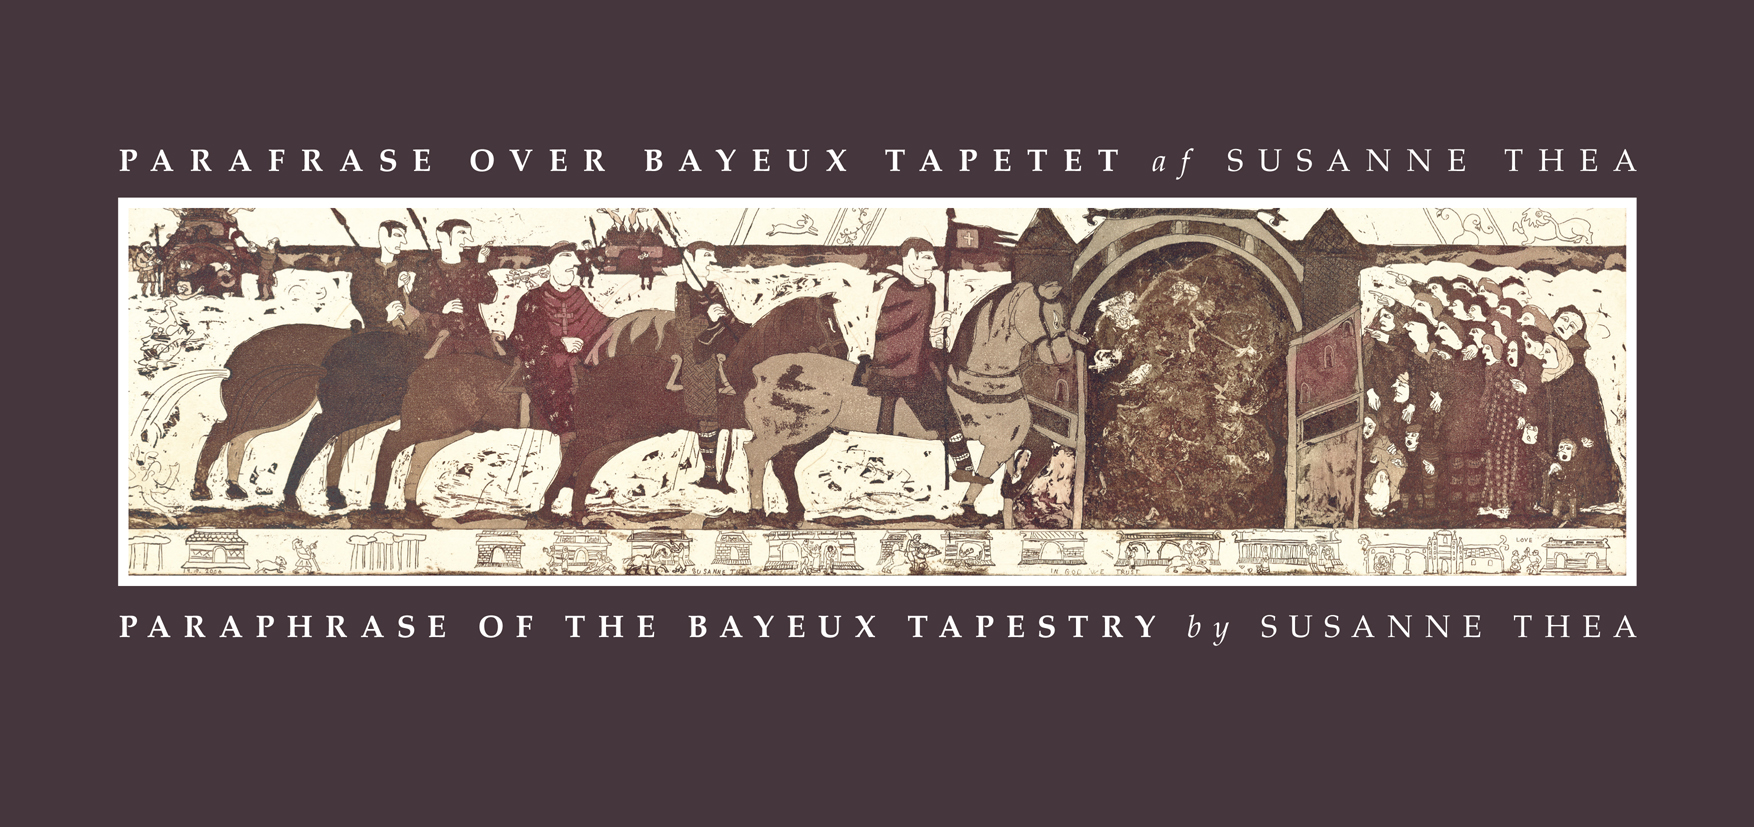 Parafrase over Bayeux tapetet – Paraphrase of the Bayeux Tapestry